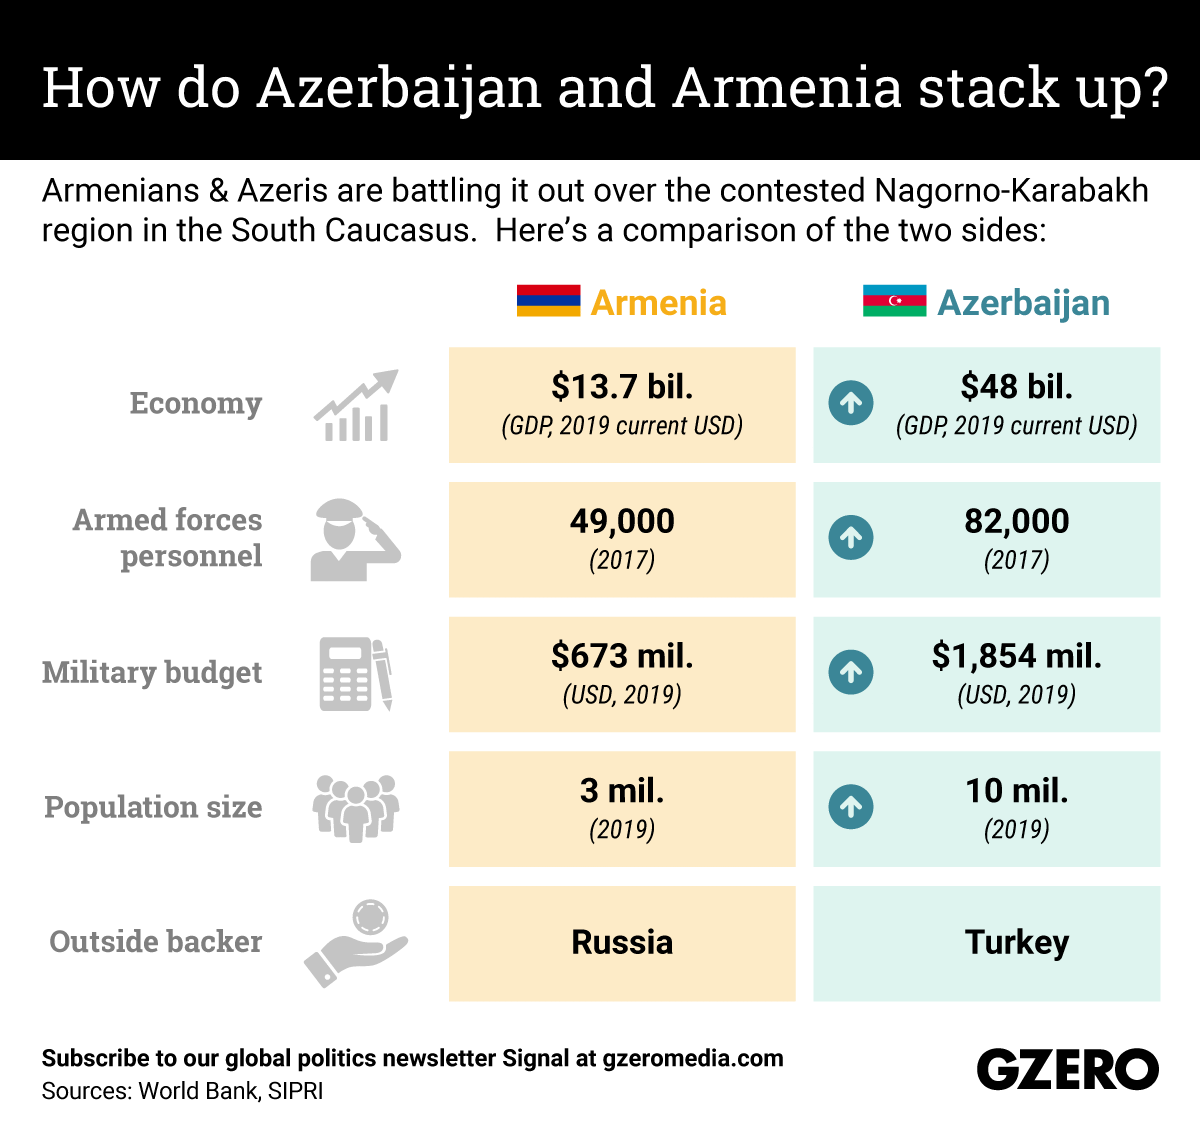 The Graphic Truth: How do Azerbaijan and Armenia stack up?